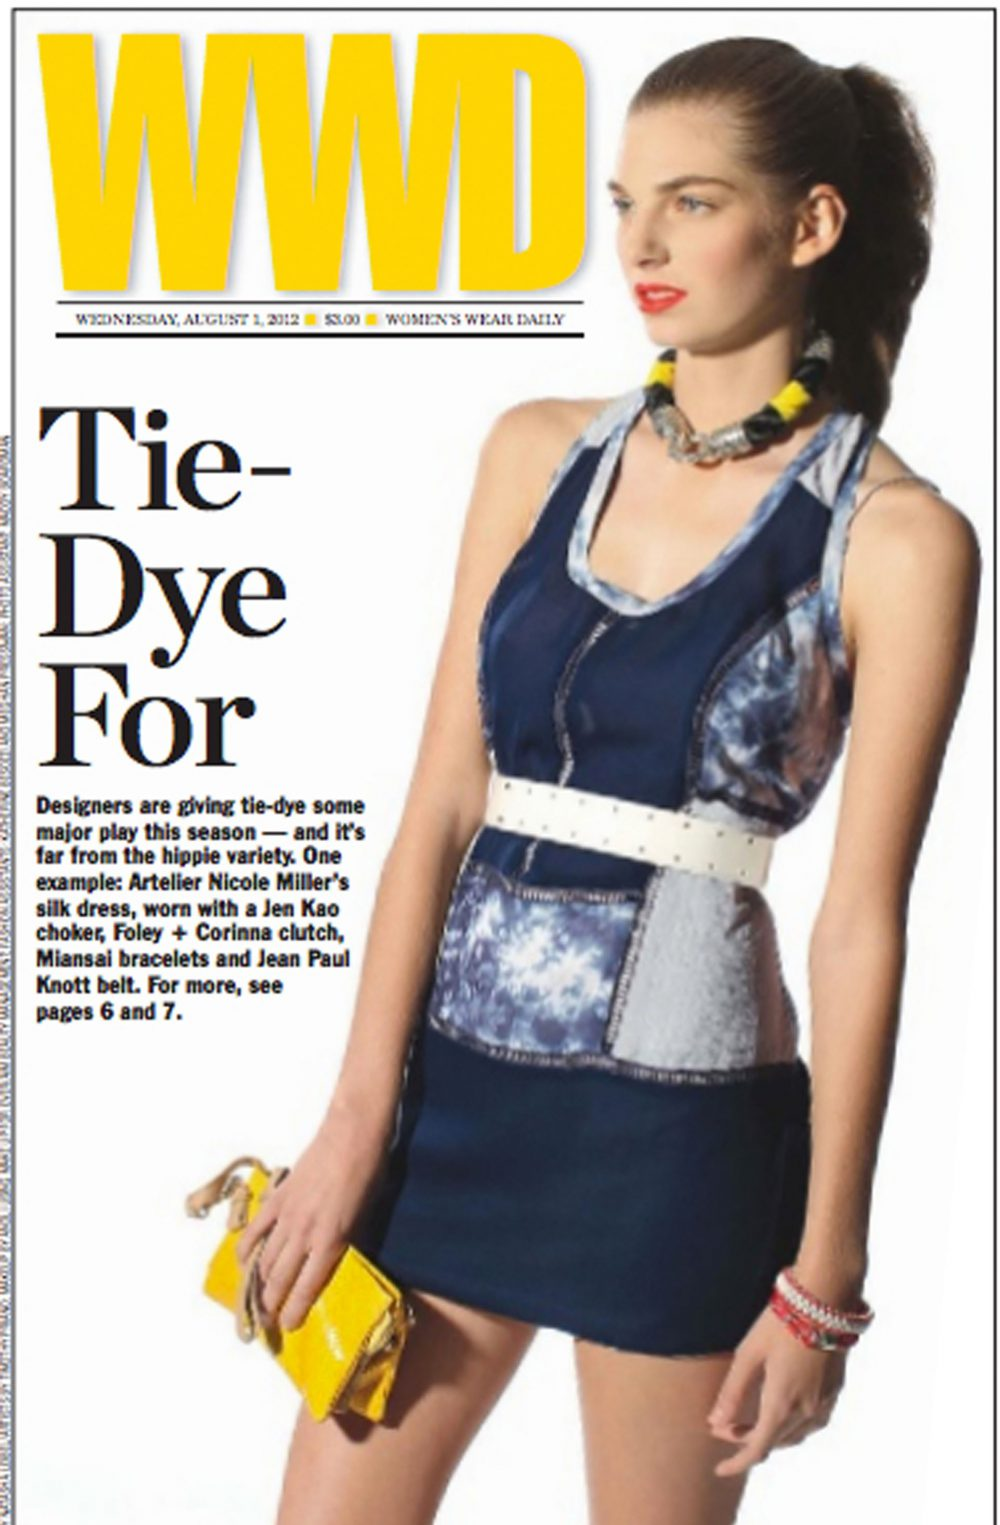 WWD Cover JADEtribe 1 Aug 2012 - JADEtribe / jade tribe